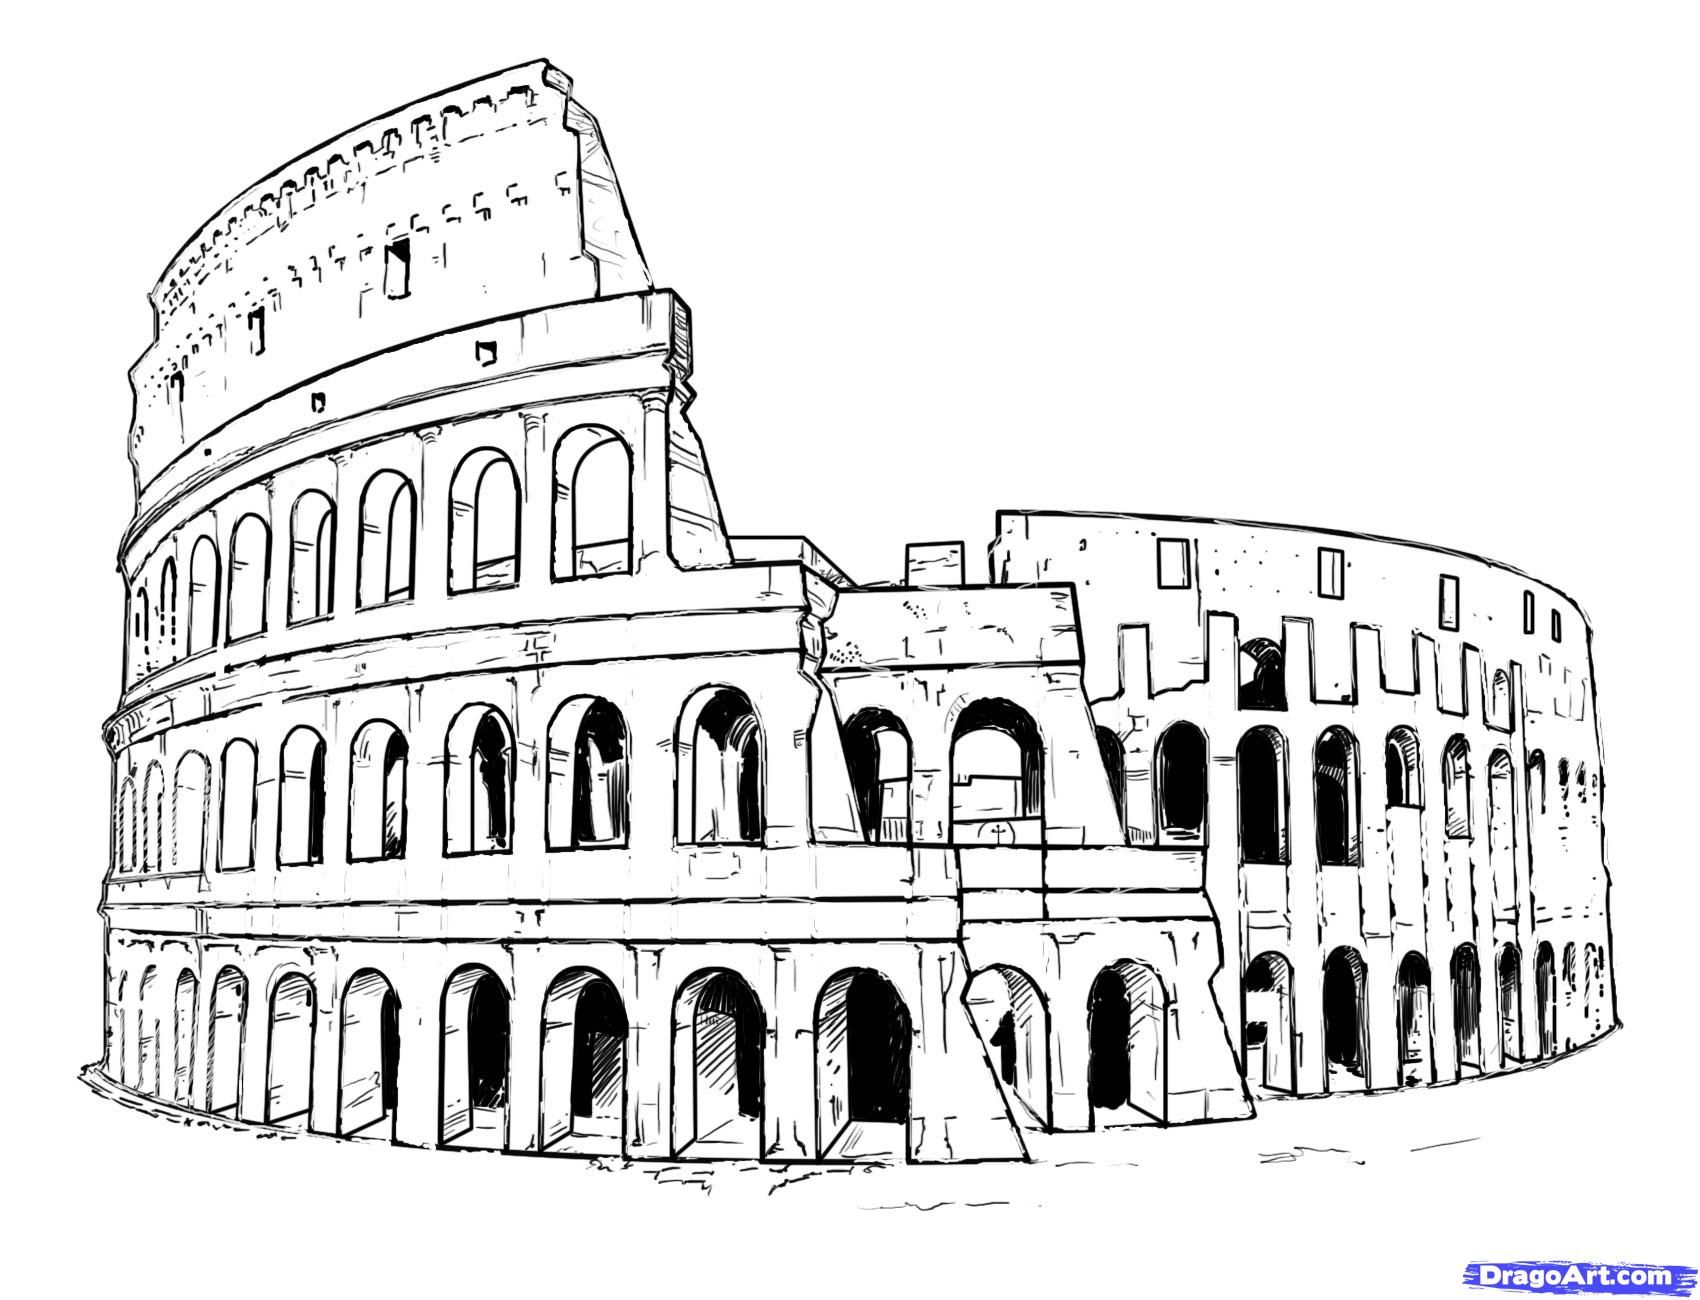 How To Draw The Colosseum Step By Step Famous Places Landmarks Places Free Online Drawing Tutorial Add Rome Art Architecture Sketch Architecture Drawing